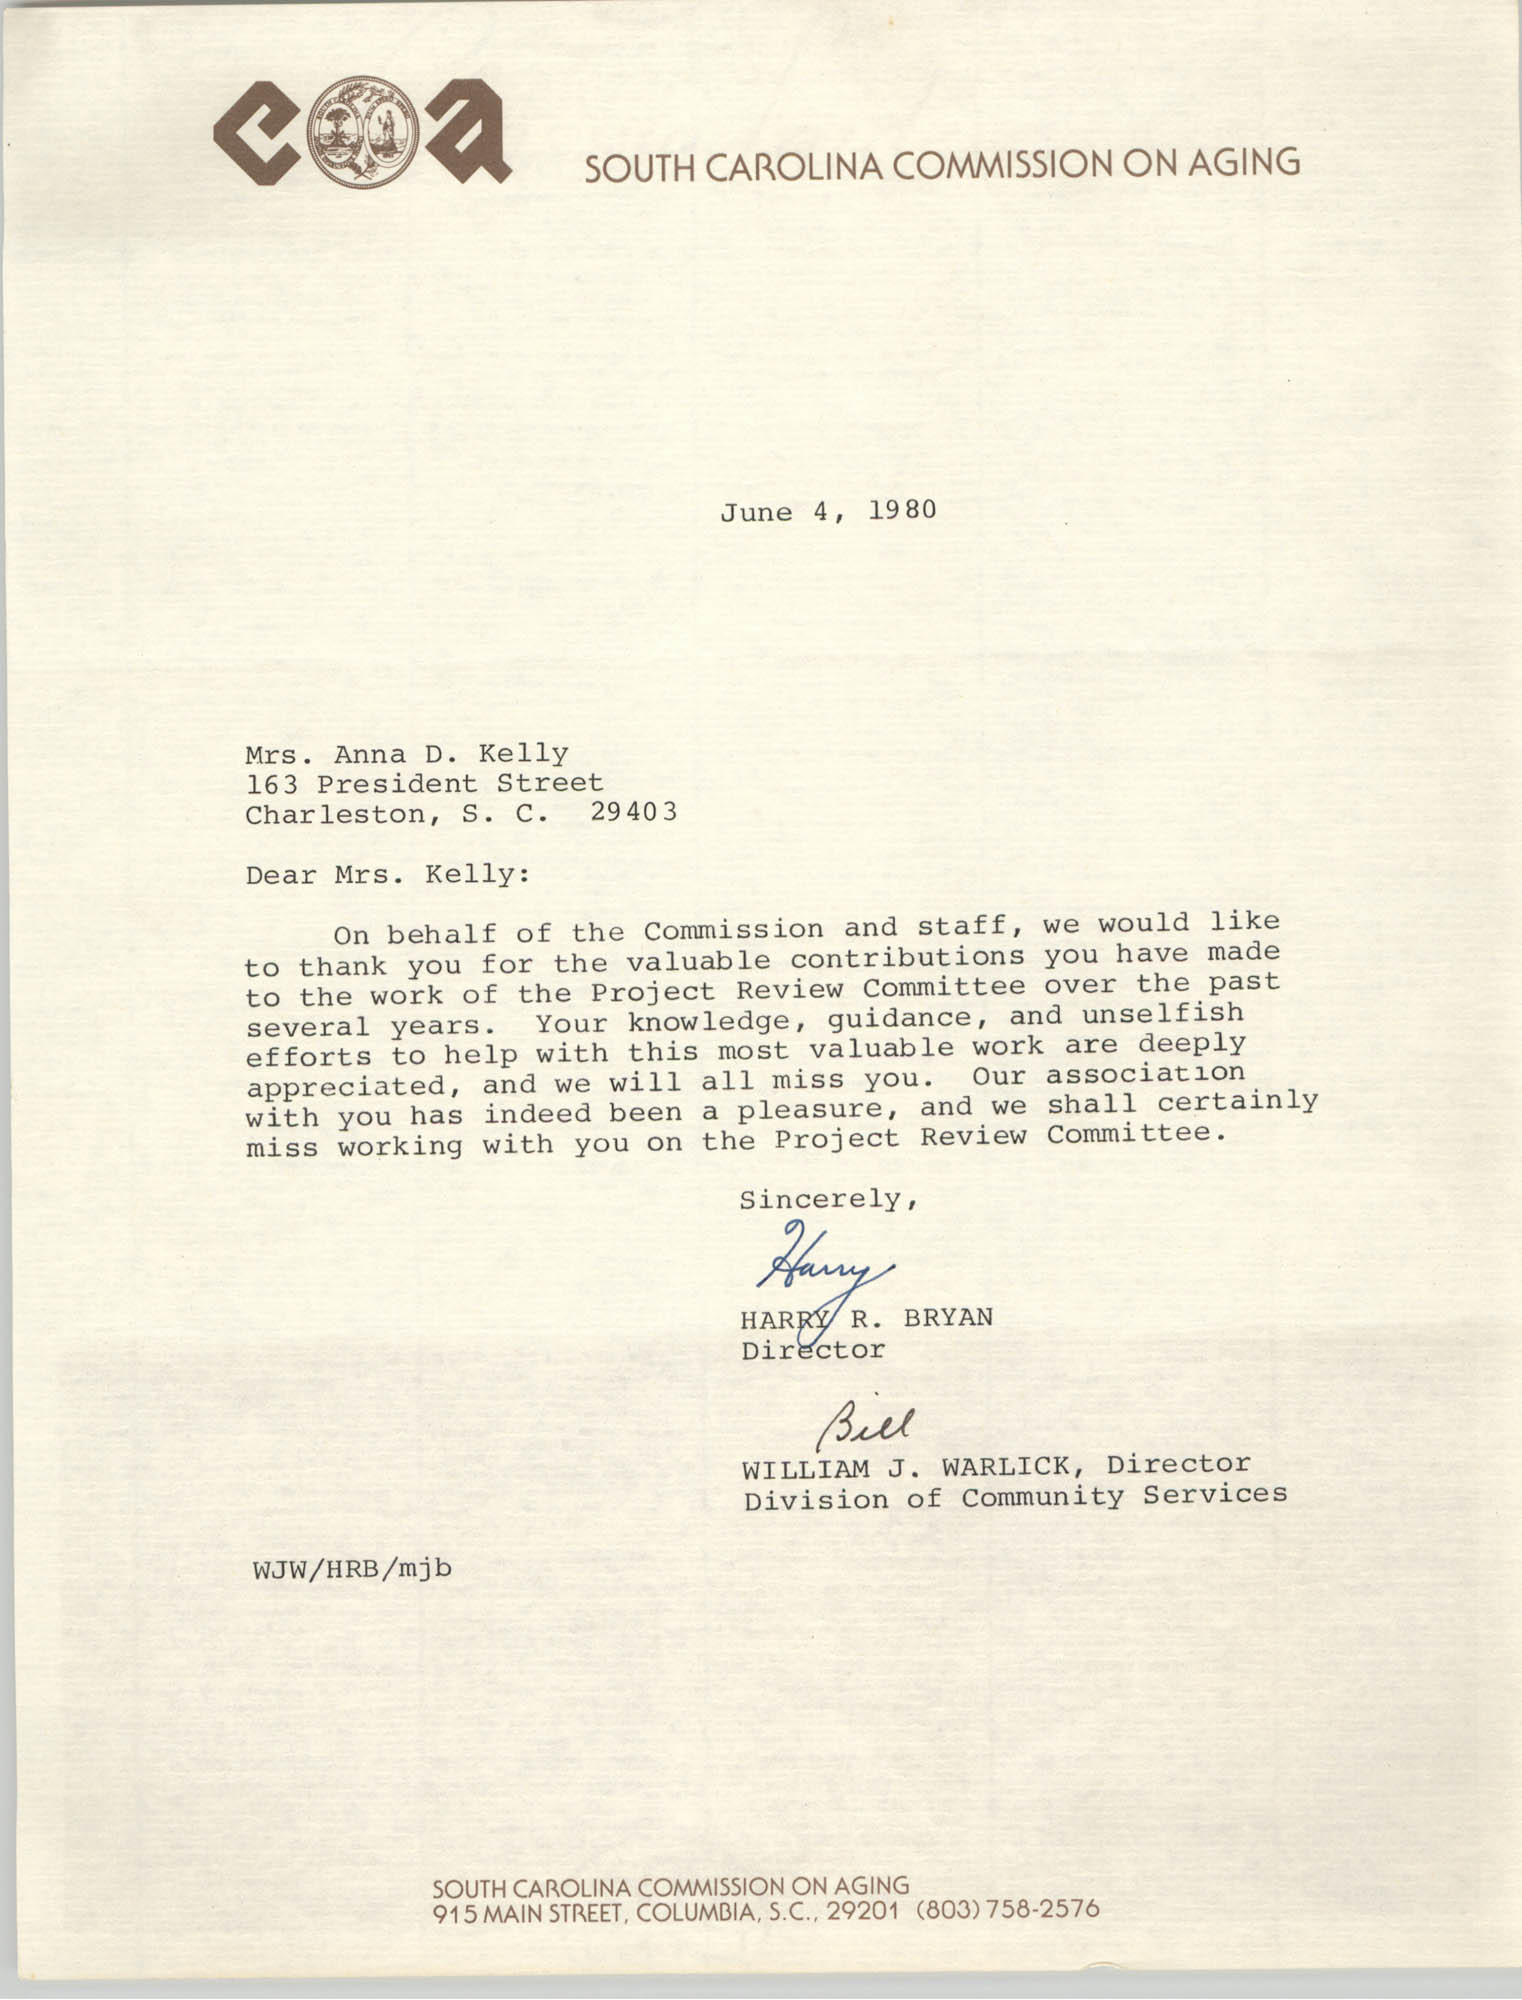 Letter from Harry R. Bryan and William J. Warlick to Anna D. Kelly, June 4, 1980